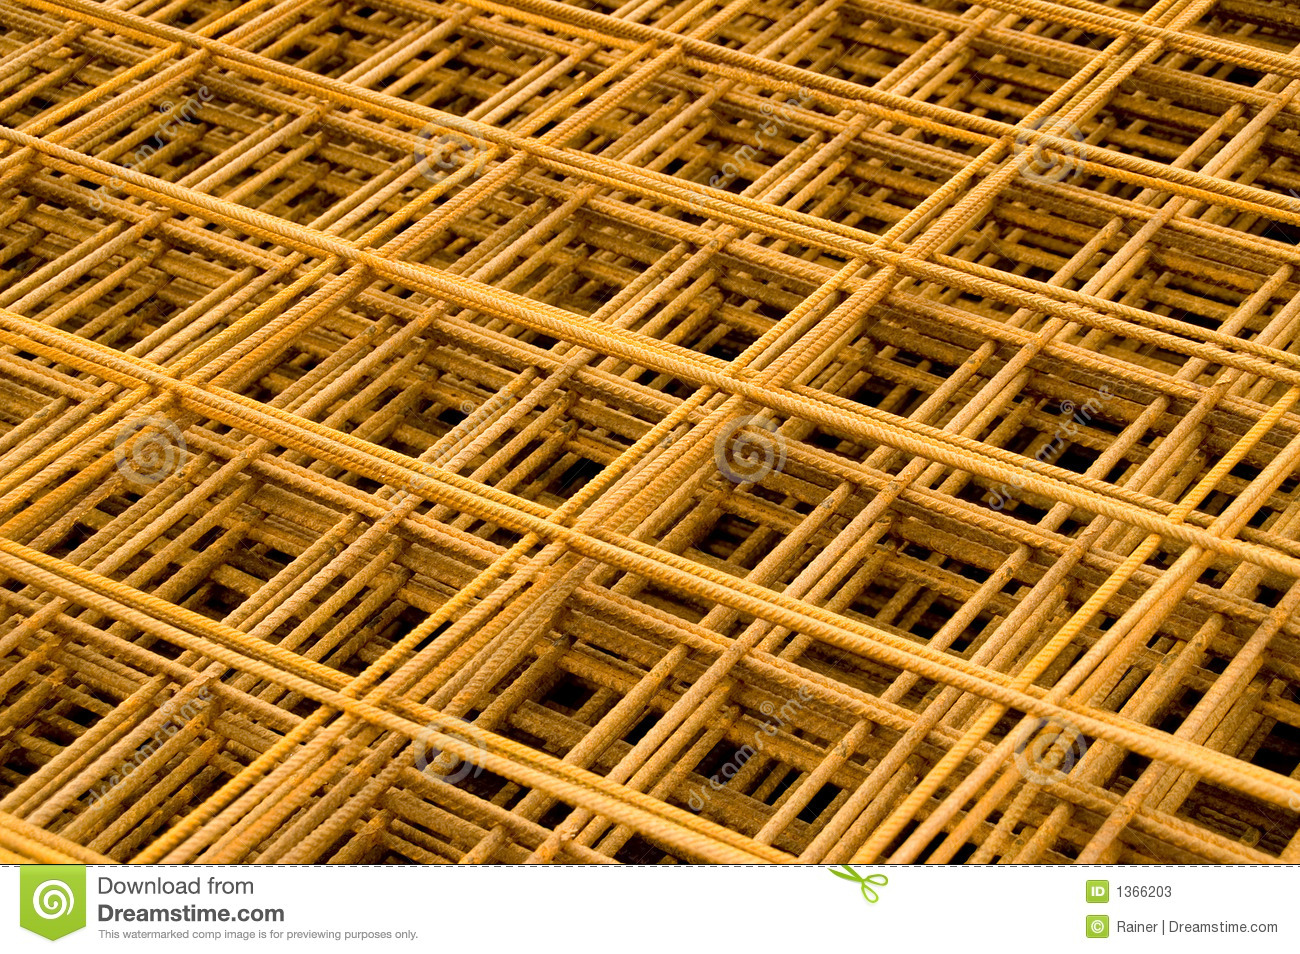 Steel Reinforcement Stock Photos Image 1366203